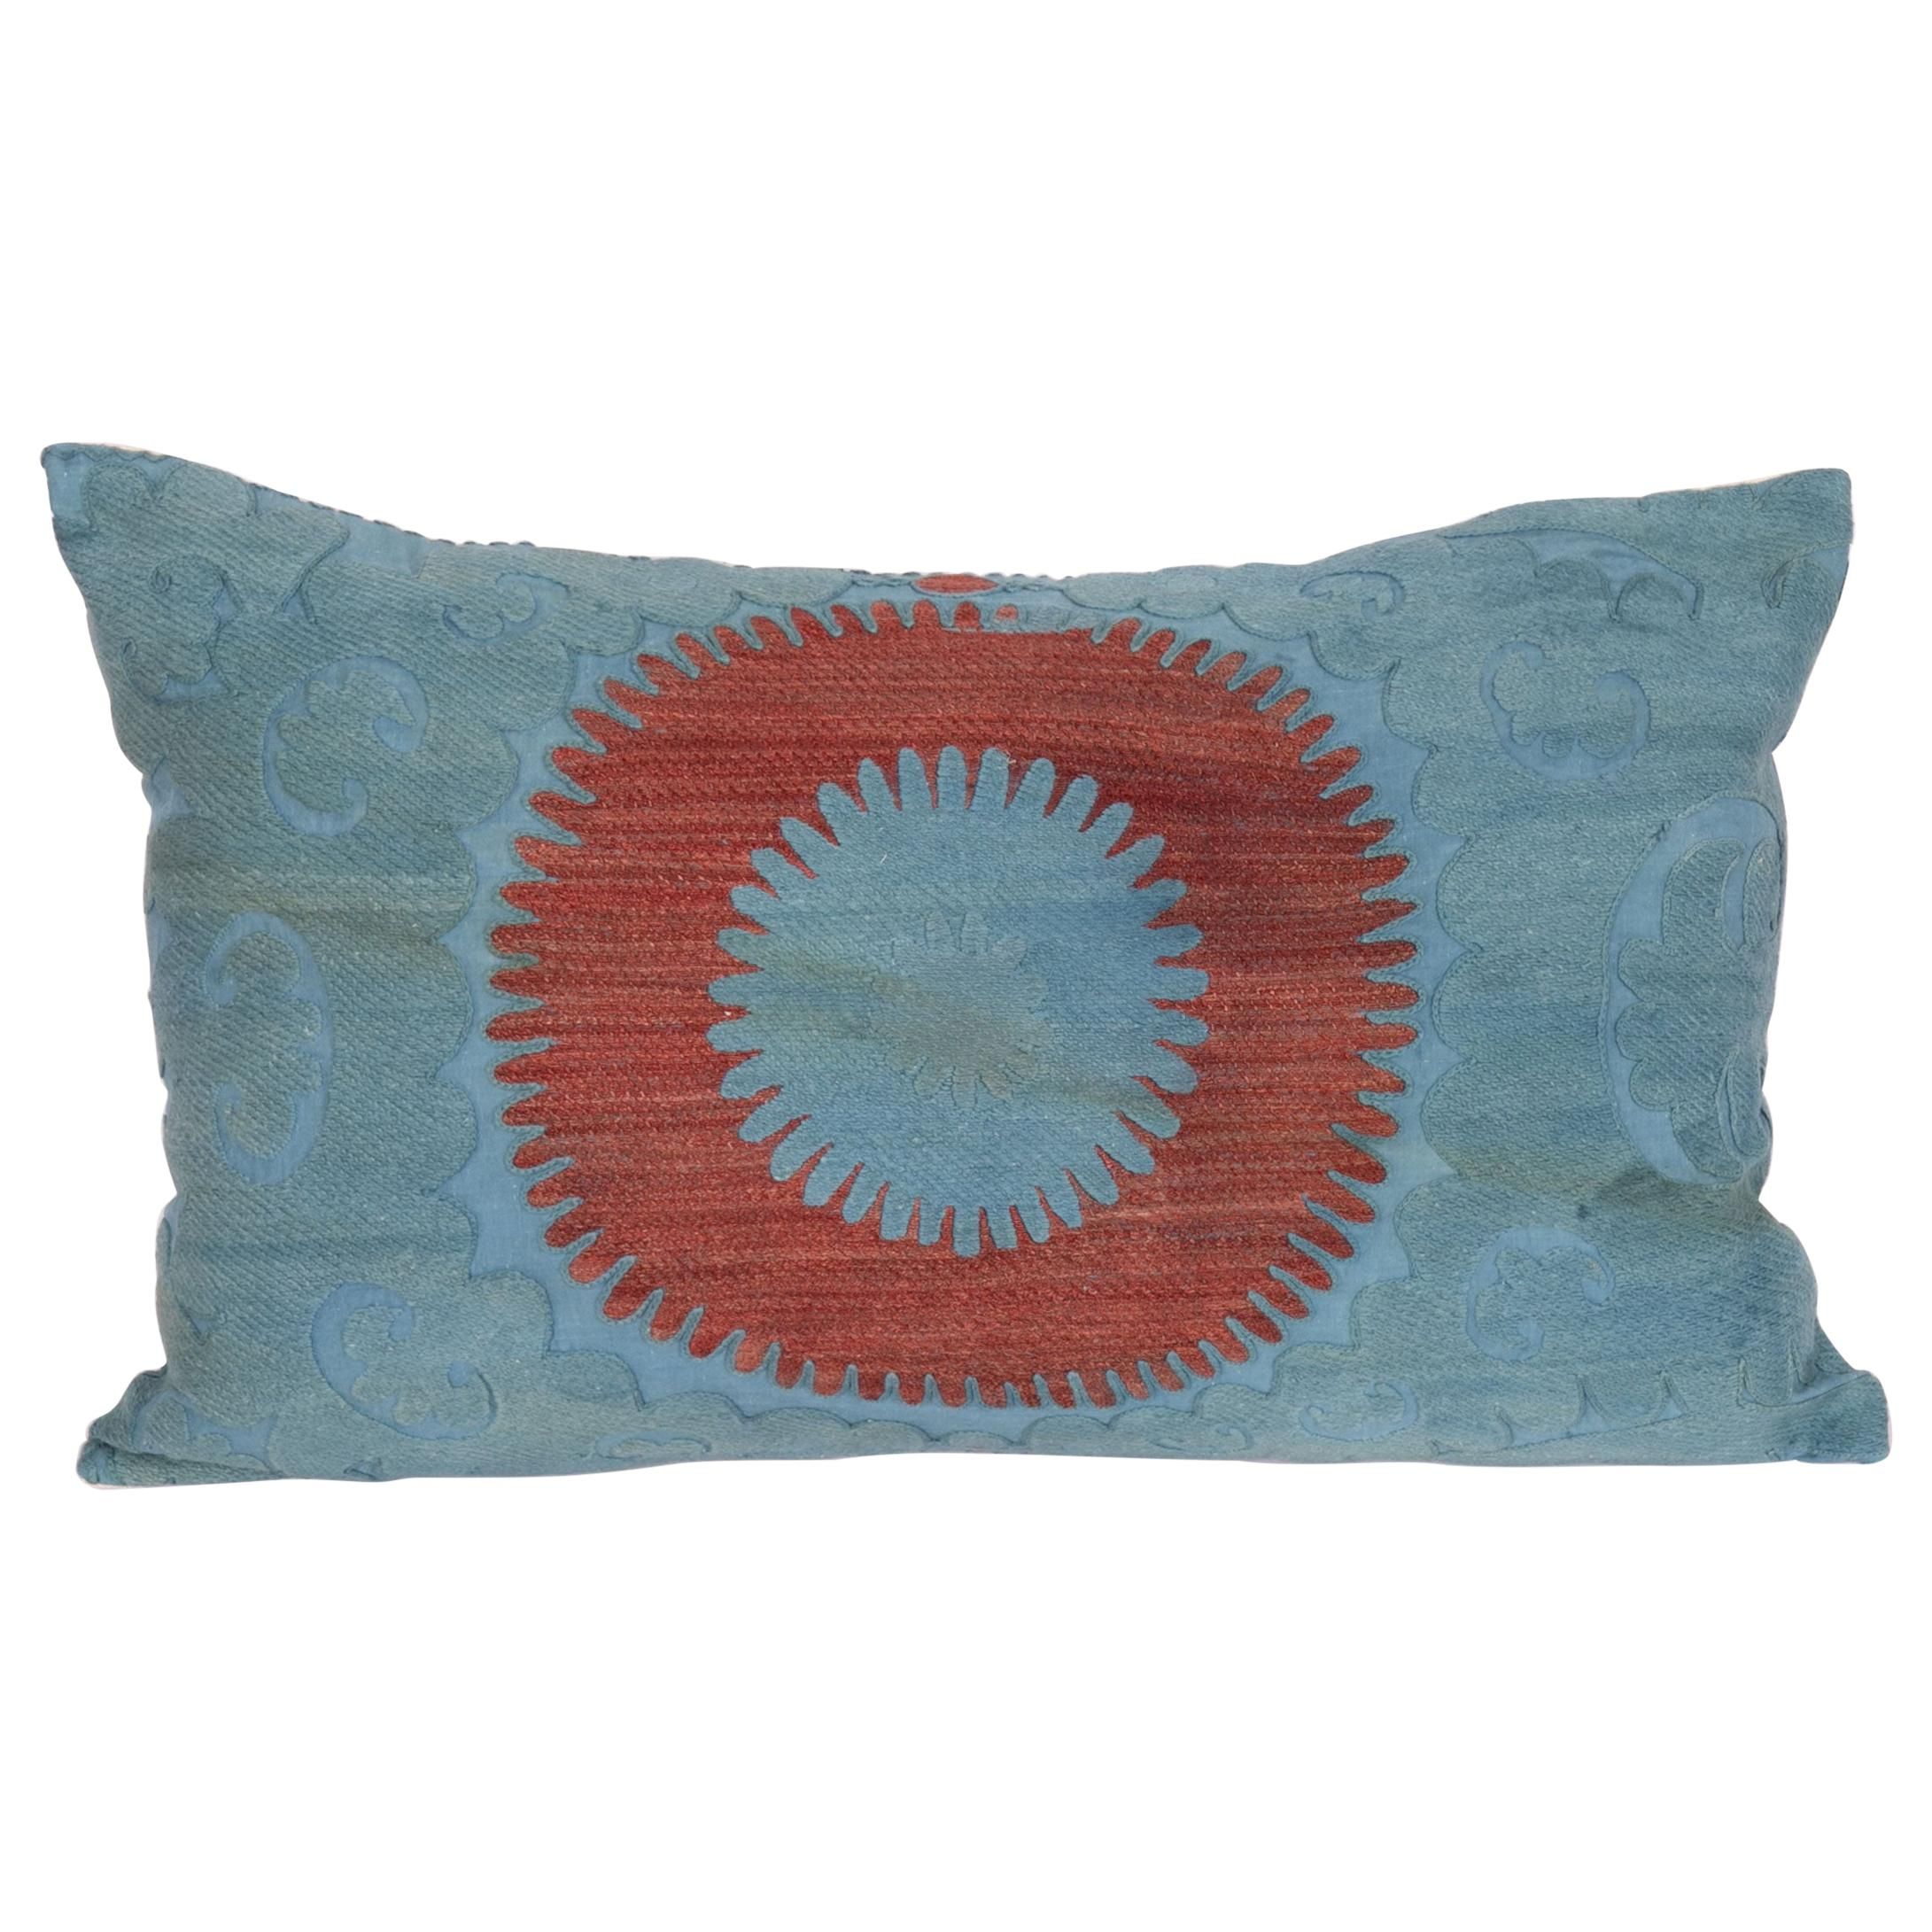 Overdyed Vintage Suzani Pillow Case, Mid-20th Century